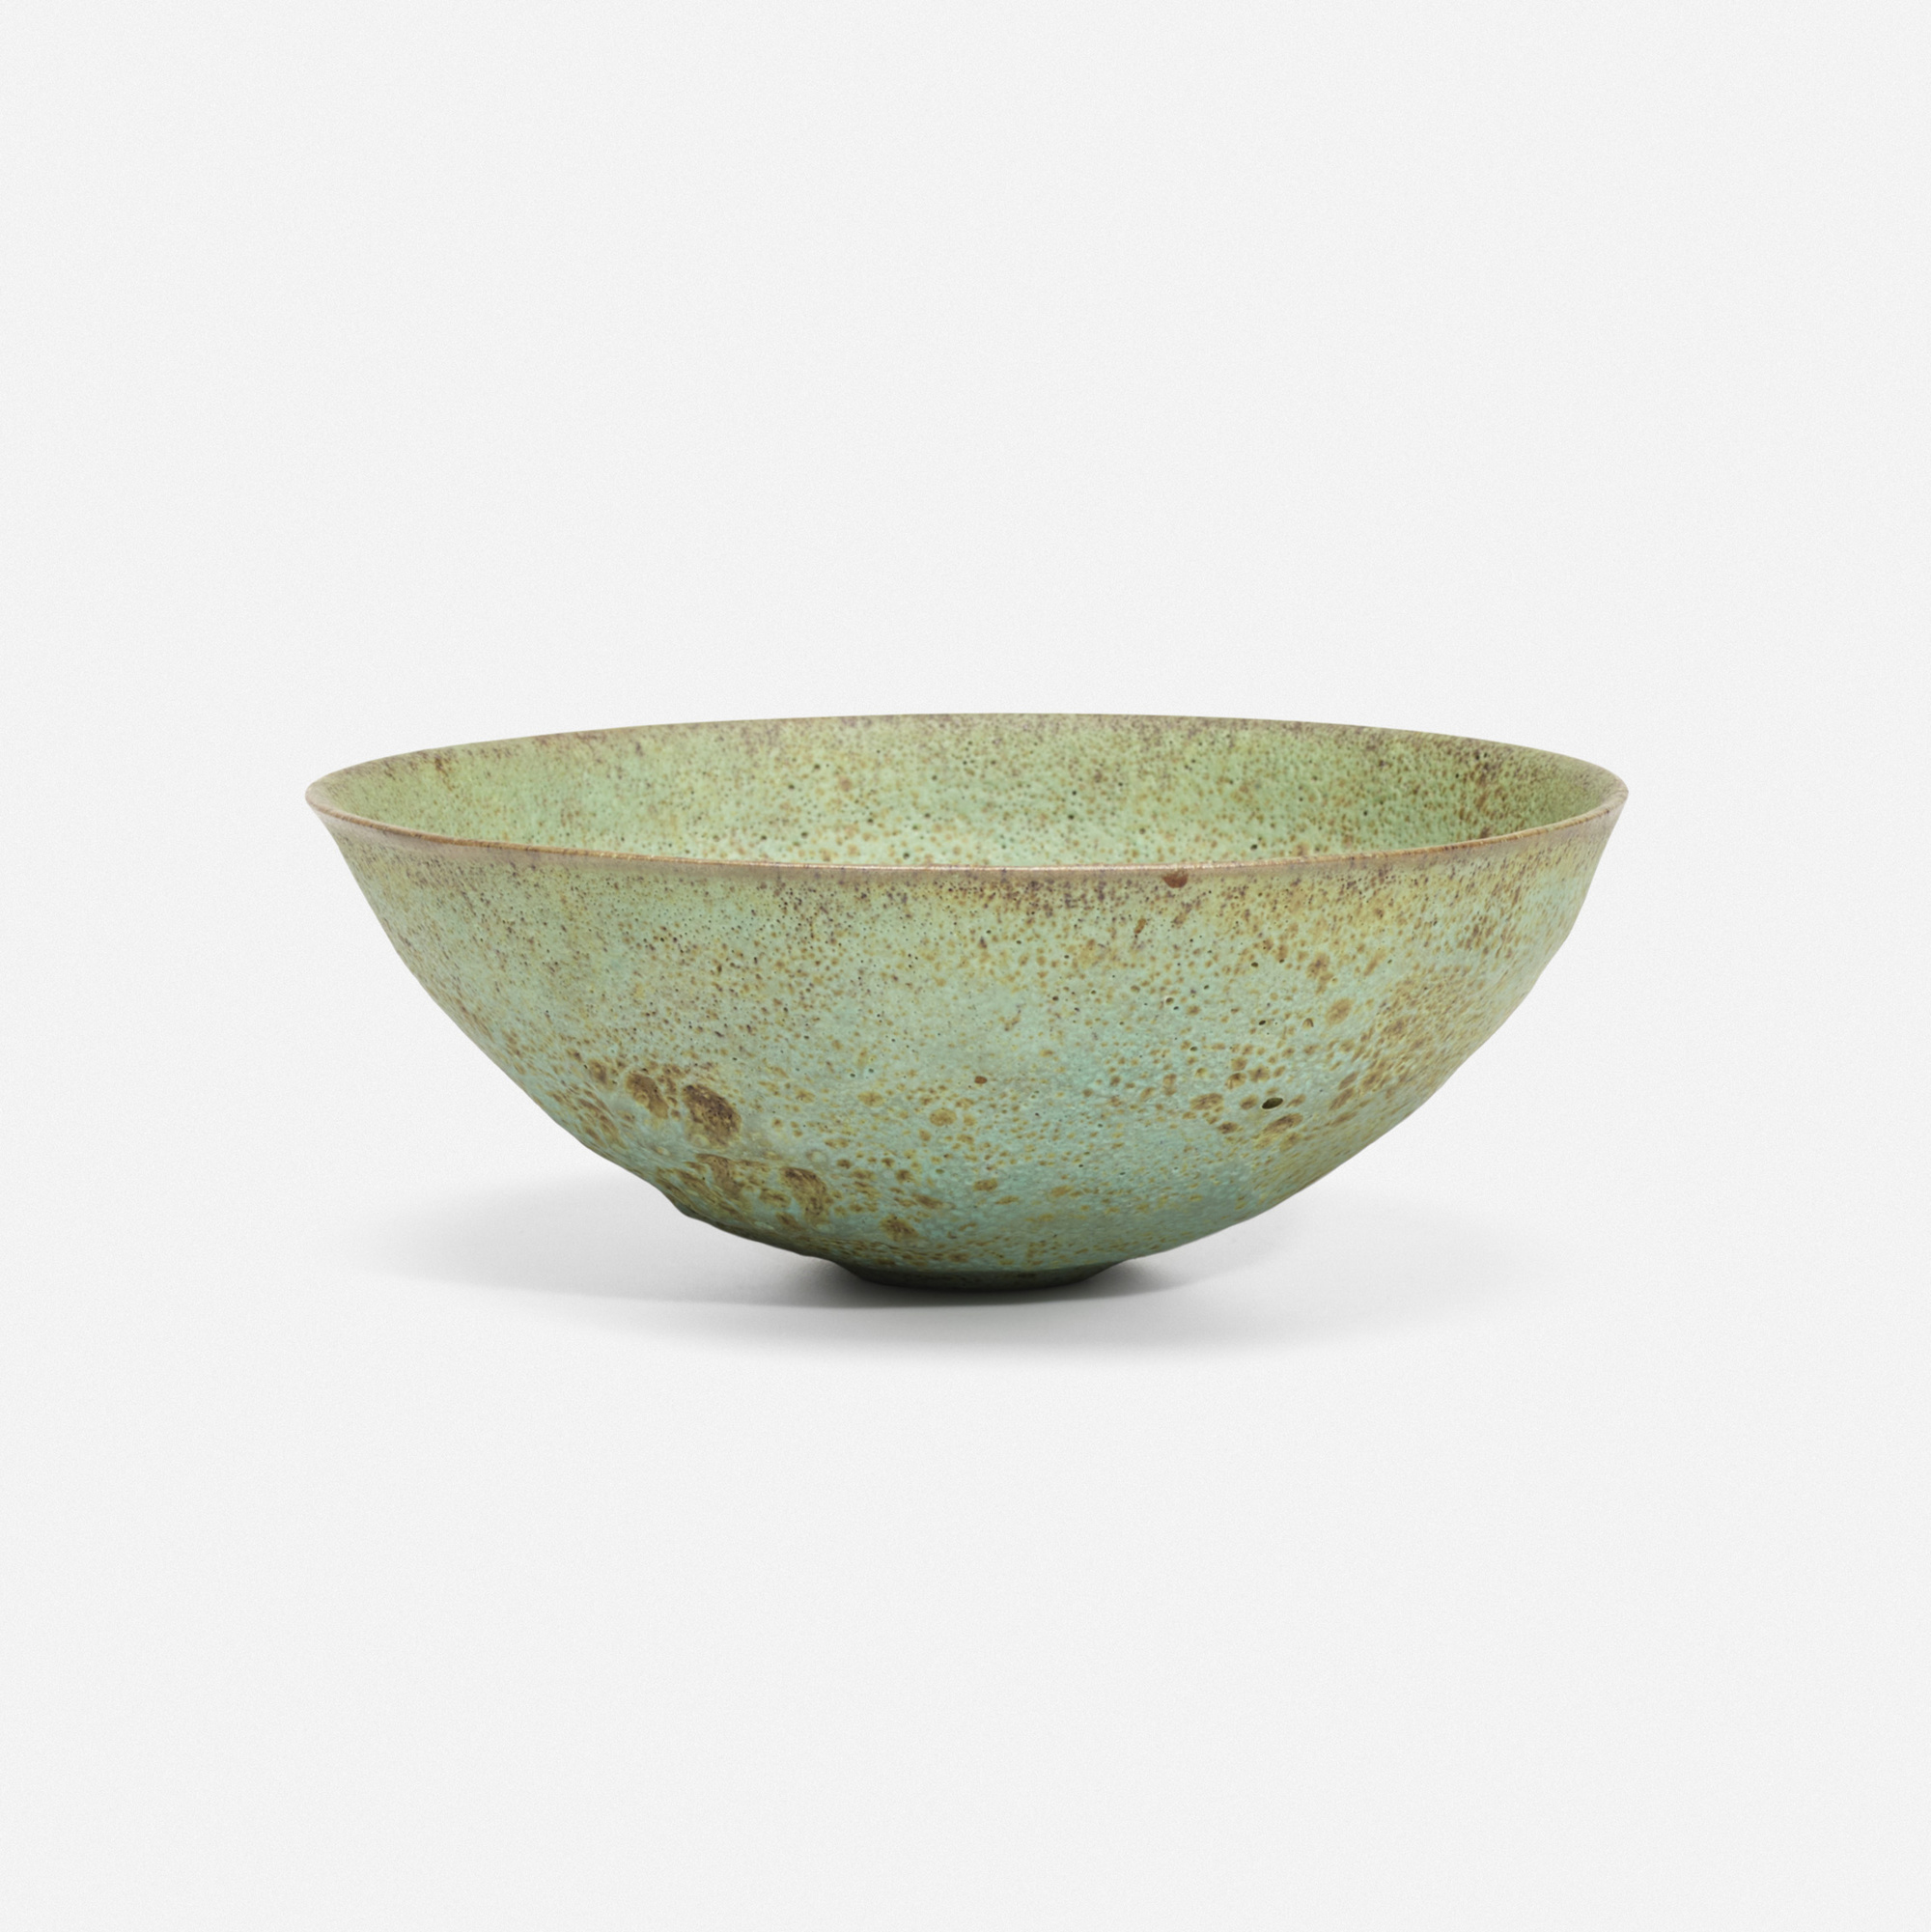 178: Gertrud and Otto Natzler / bowl (1 of 2)